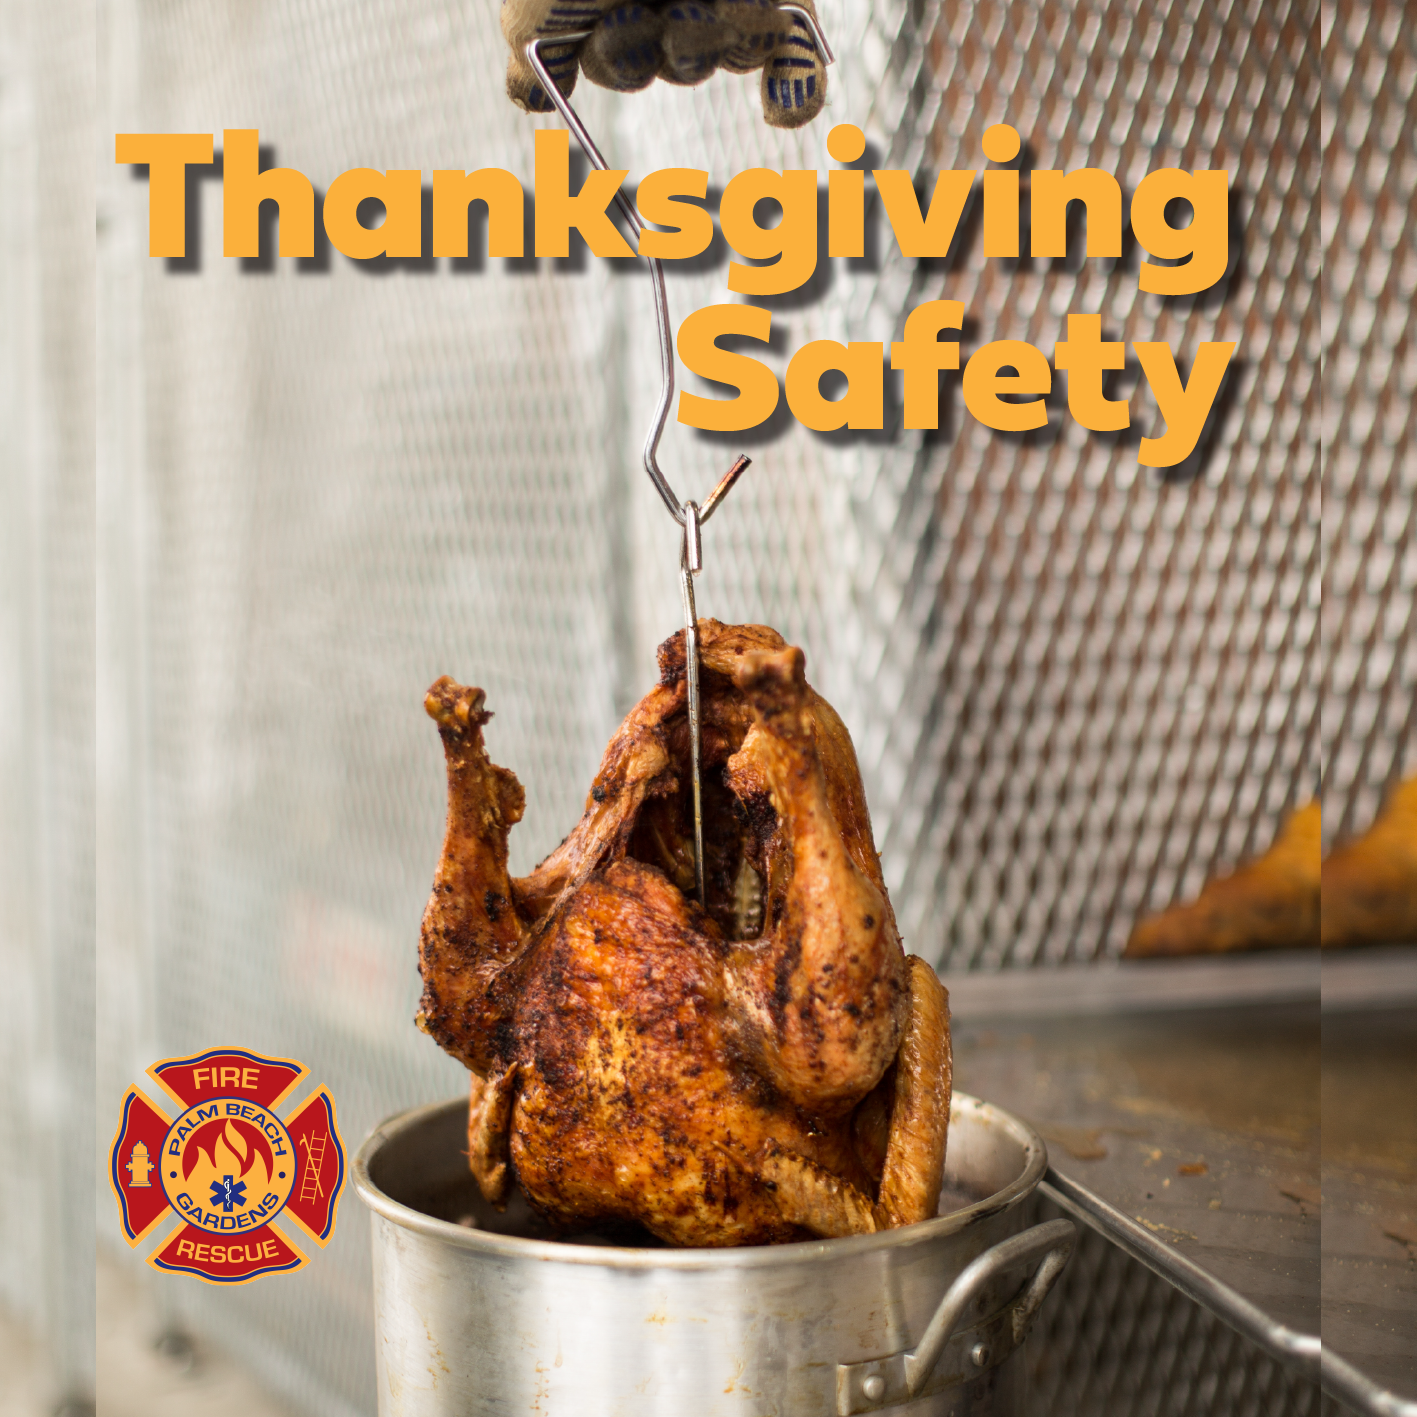 Thanksgiving Safety. Palm Beach Gardens Fire Rescue. Deep-fried turkey.